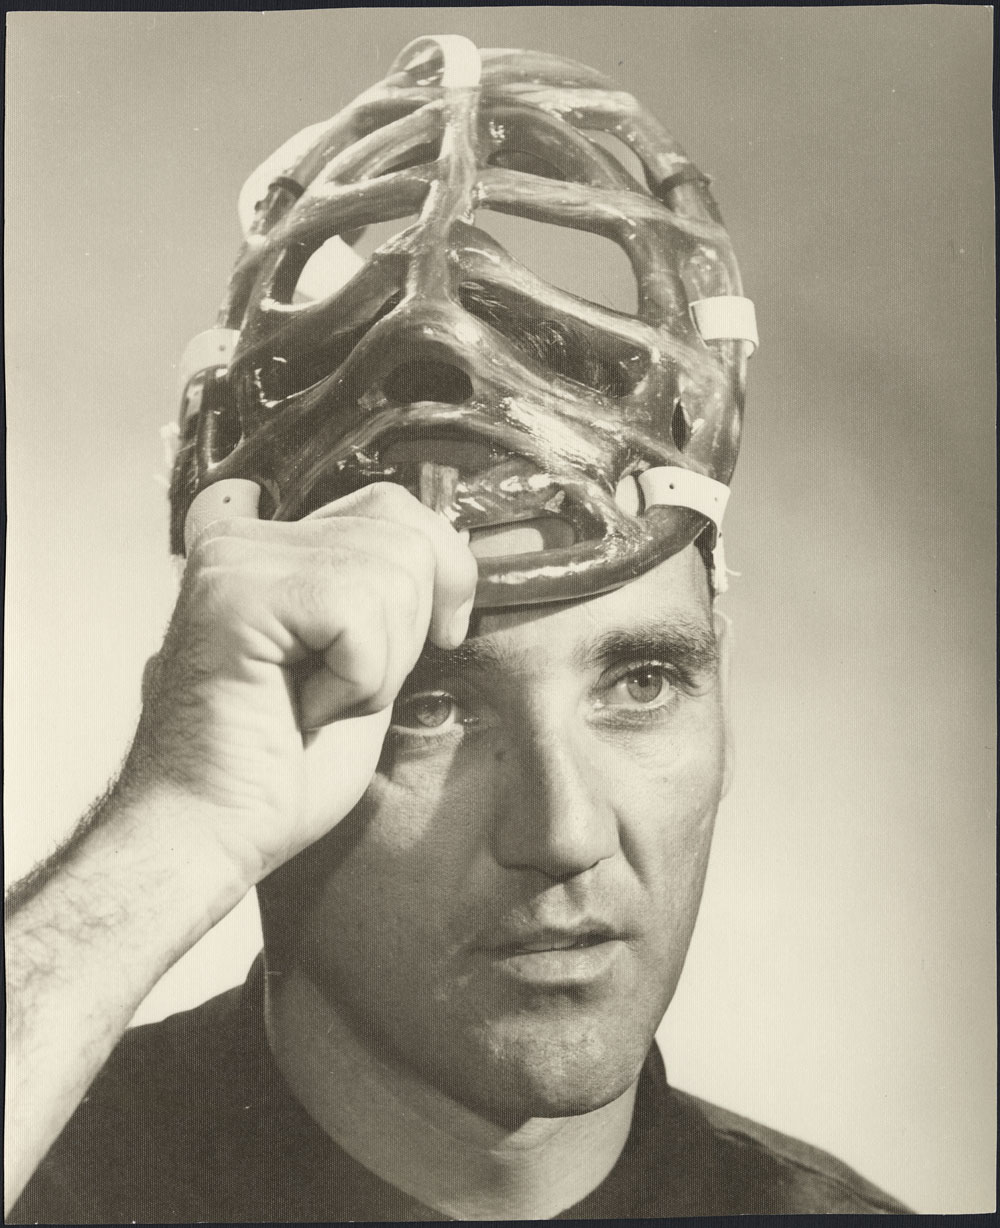 Jacques Plante lifting his hockey mask. (item 2)